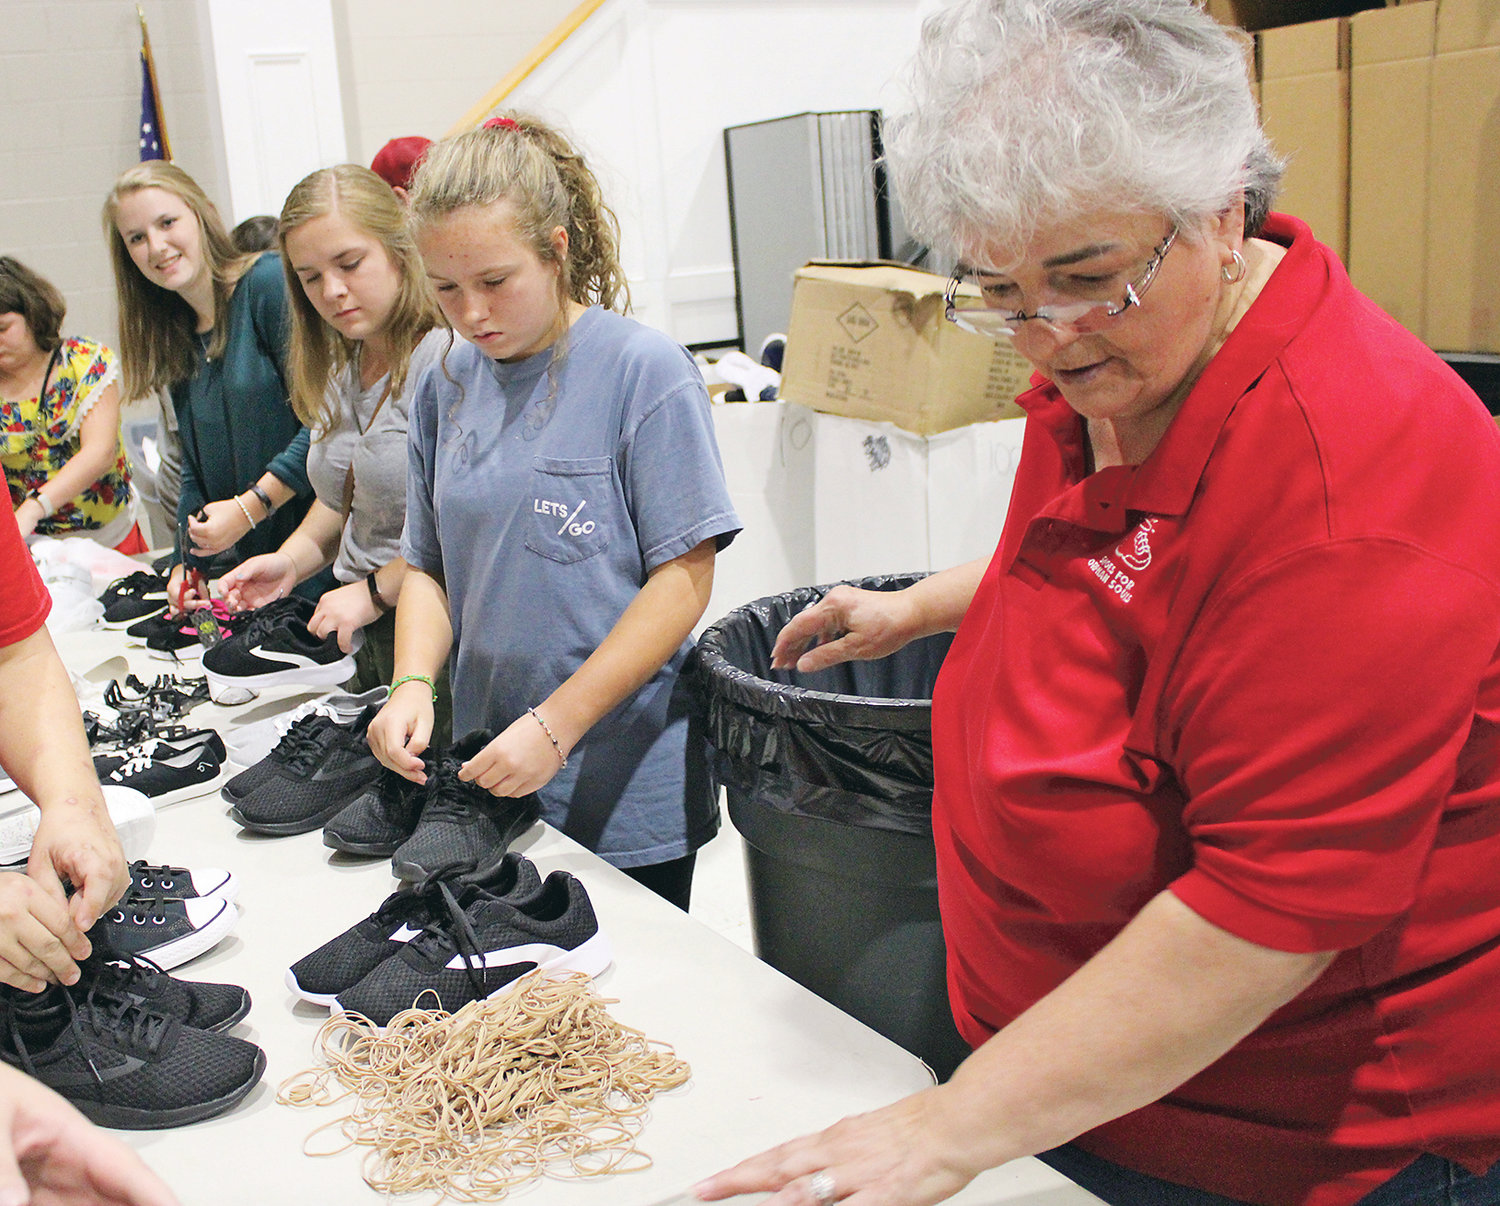 LEAD COORDINATOR BOBBIE REAGAN, right, helps a team of volunteers pair shoes with rubber bands before packing them into boxes for the annual Shoes for Orphan Souls drive. This shoe-packing event took place at the end of last year's campaign.